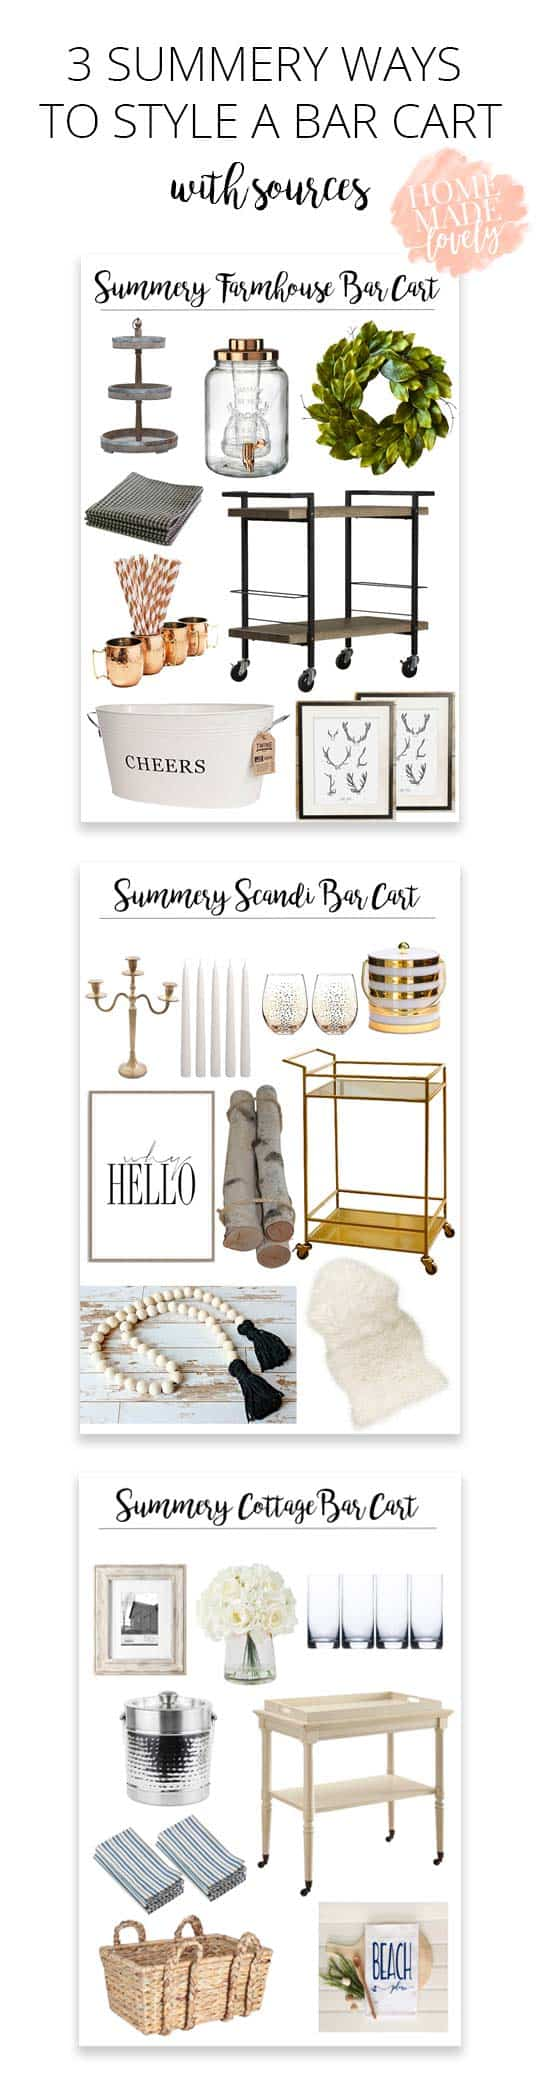 Summer is the perfect time to throw a get together - take a look at how to style a bar cart for a farmhouse, cottage or Scandinavian home!